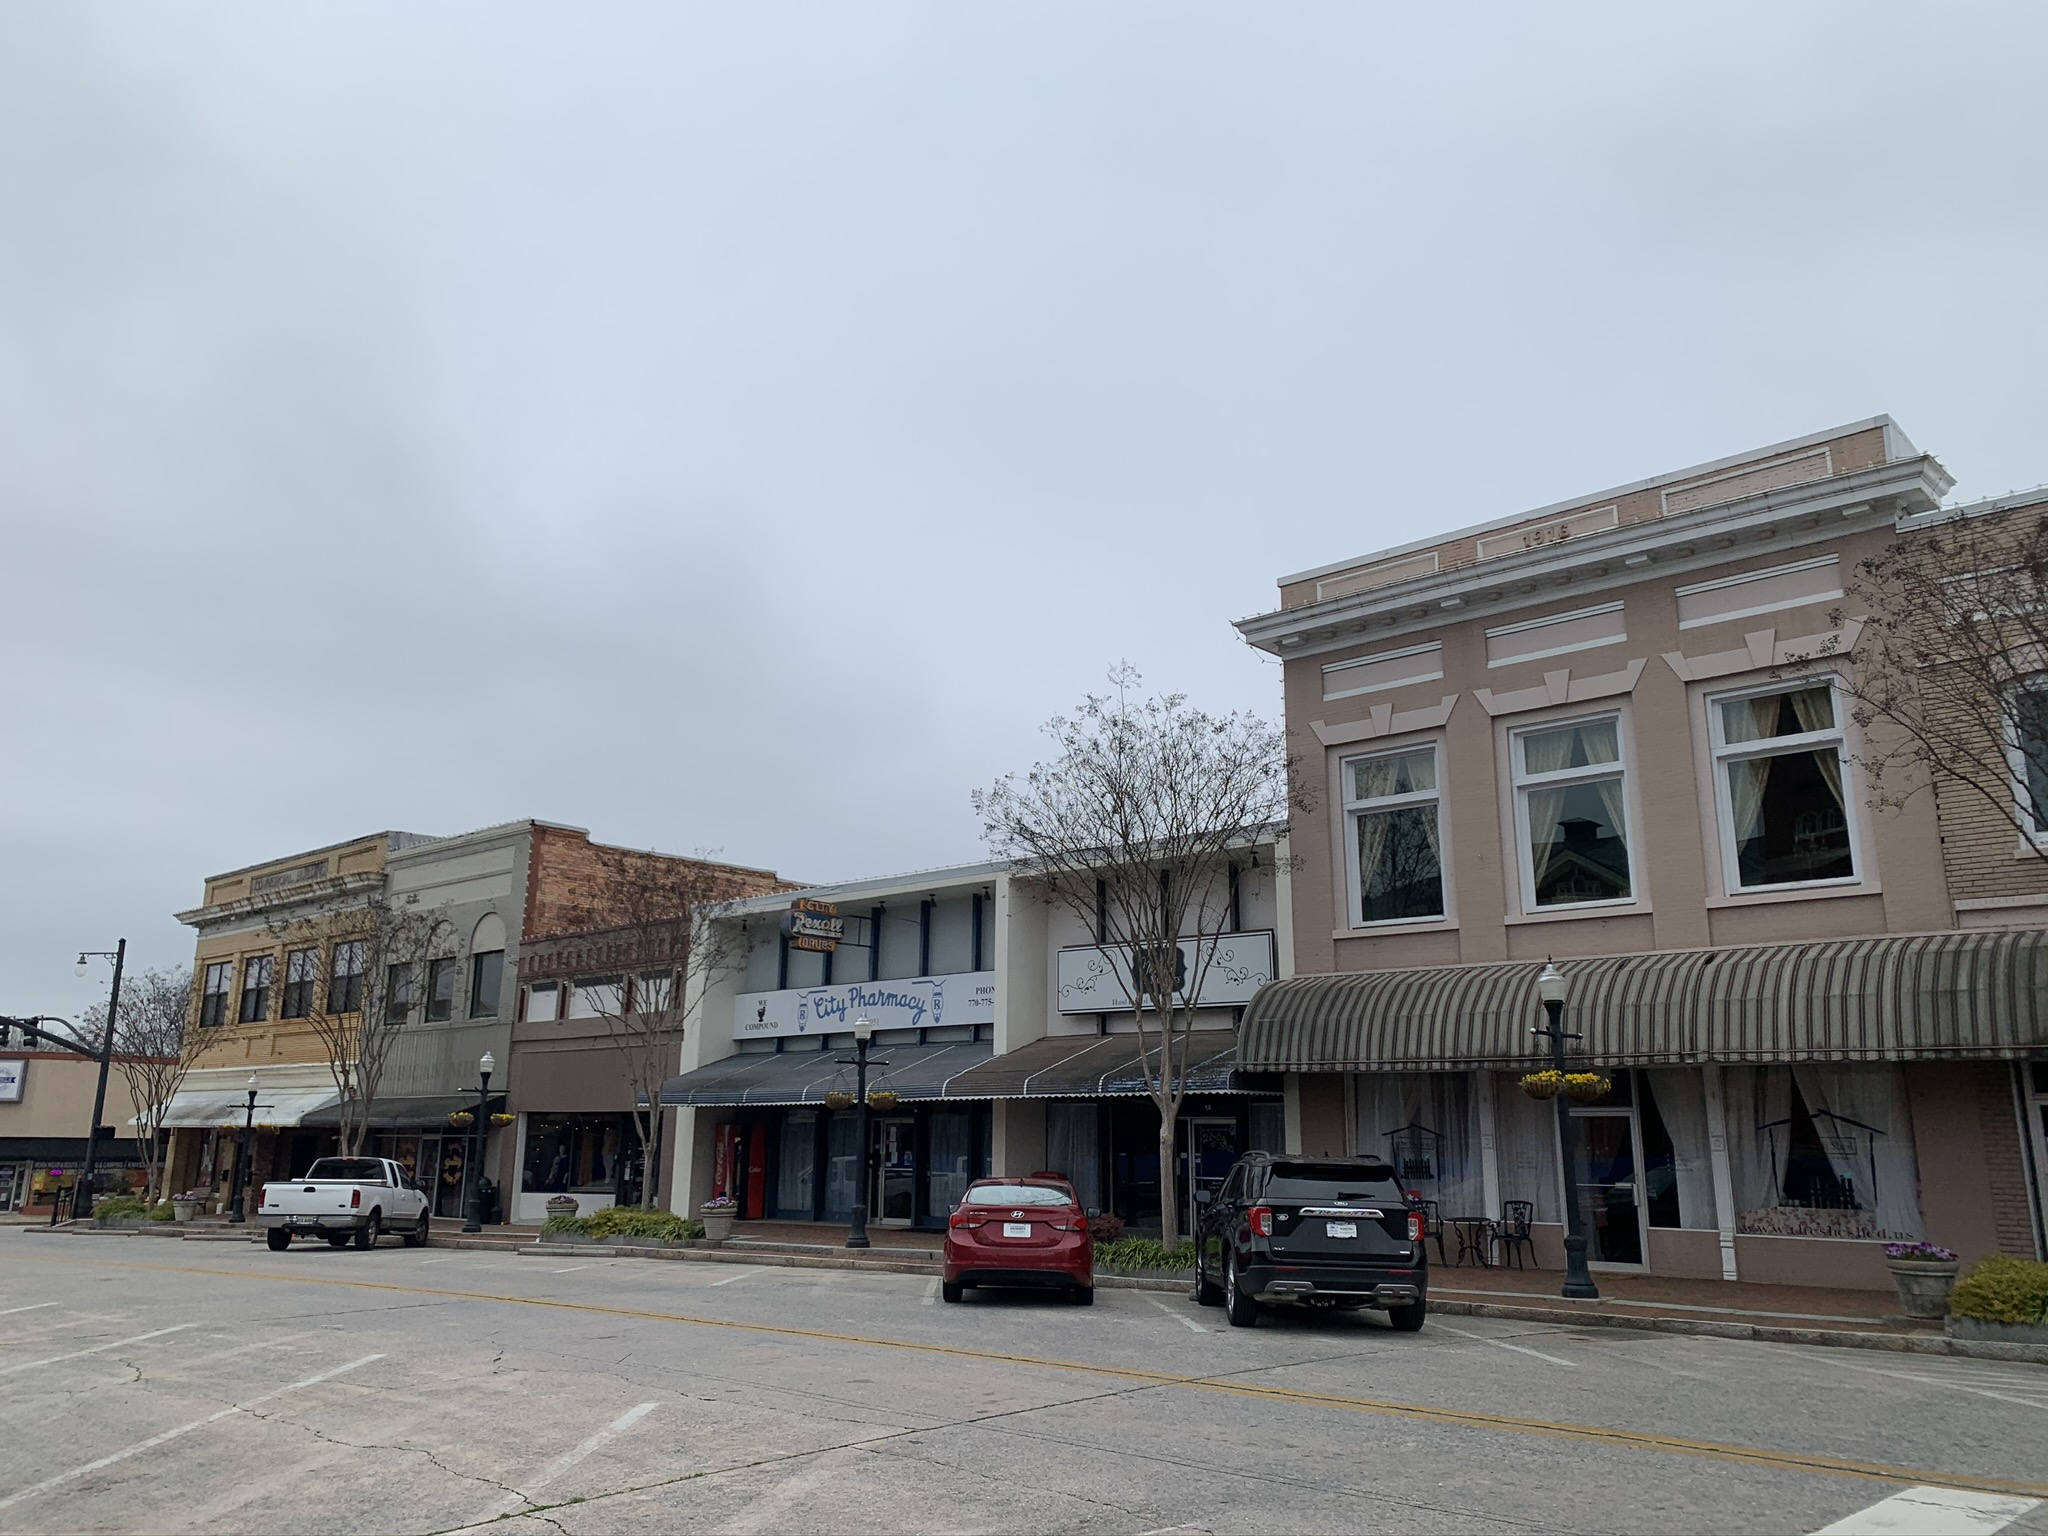 Downtown Hawkins in Jackson, Georgia is one of the top things to do in Mystic Falls